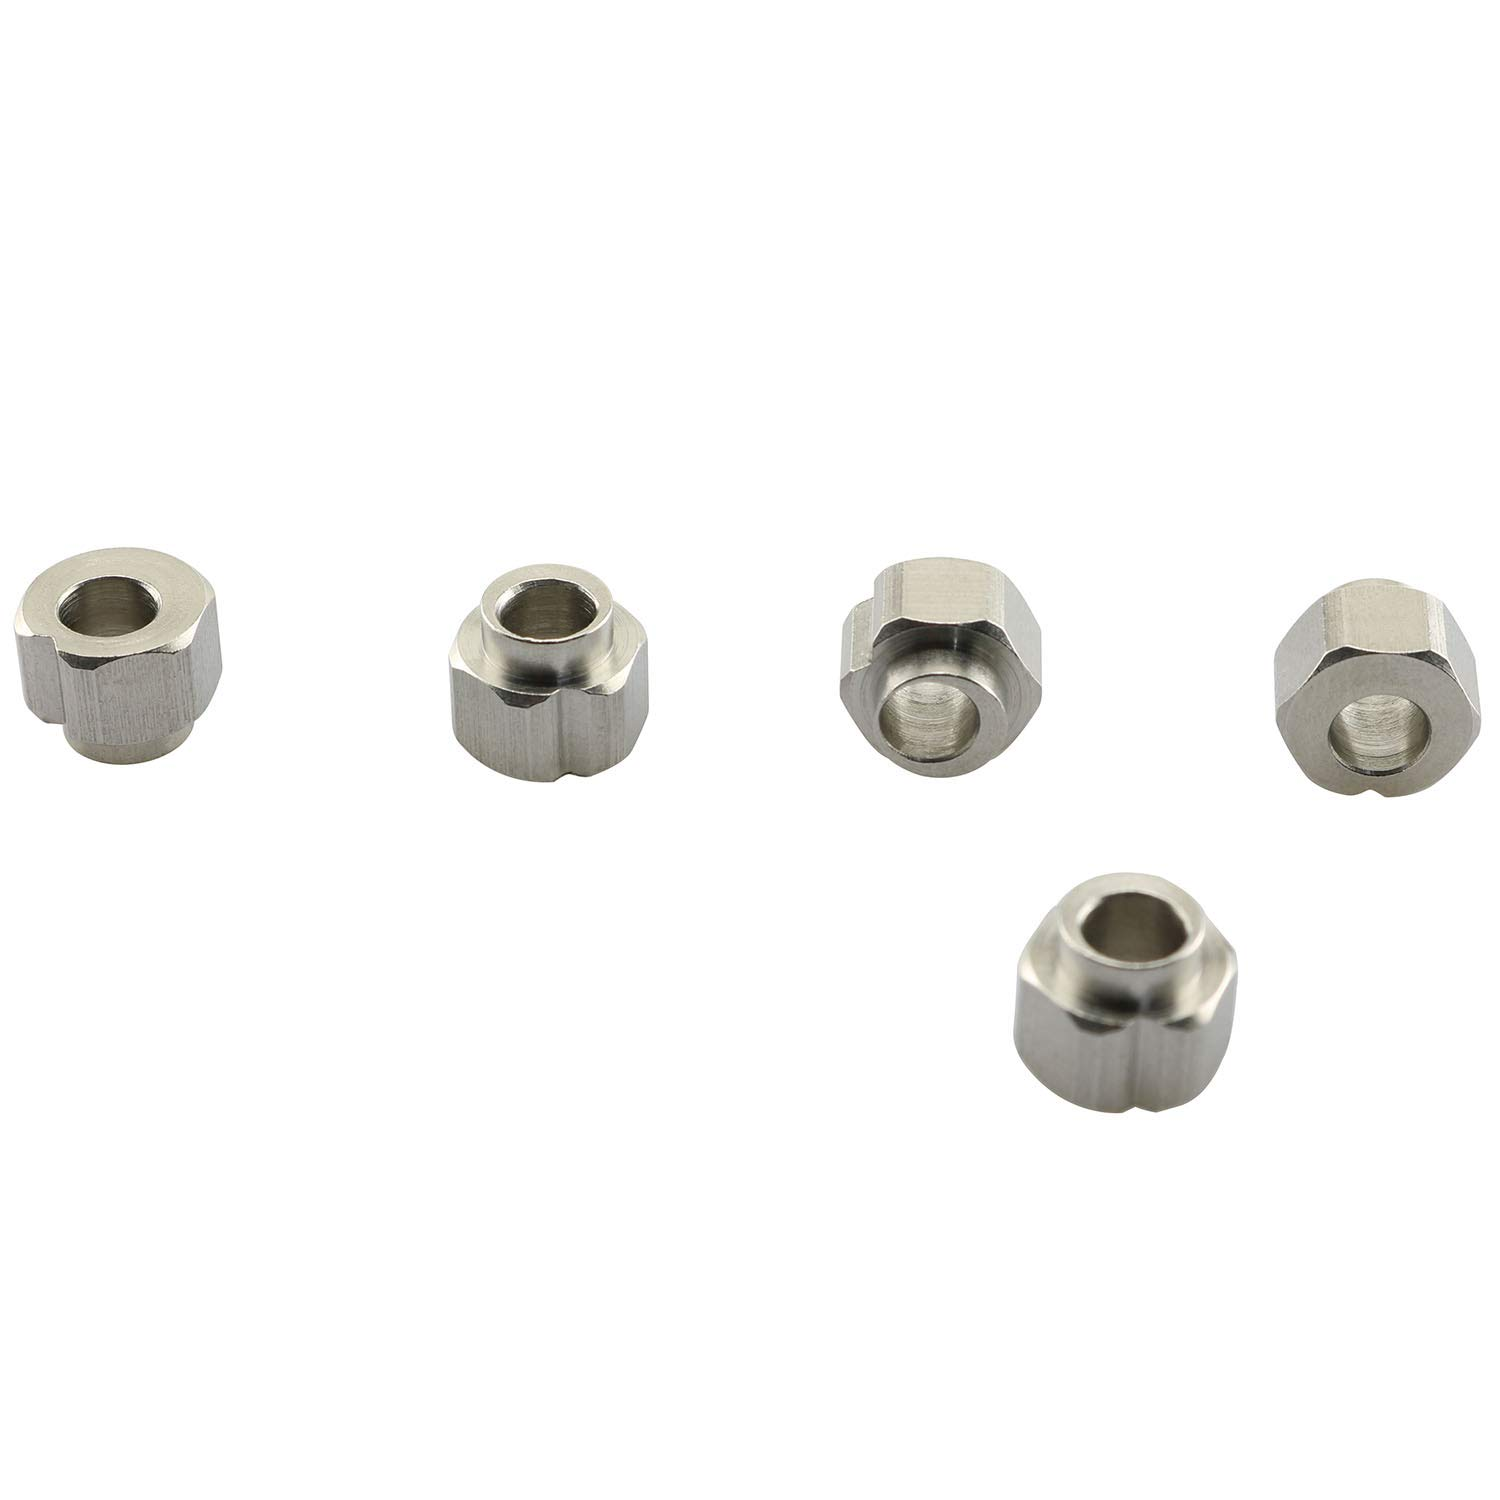 20 X Cotter Pin Spacers for PCB 4,8mm